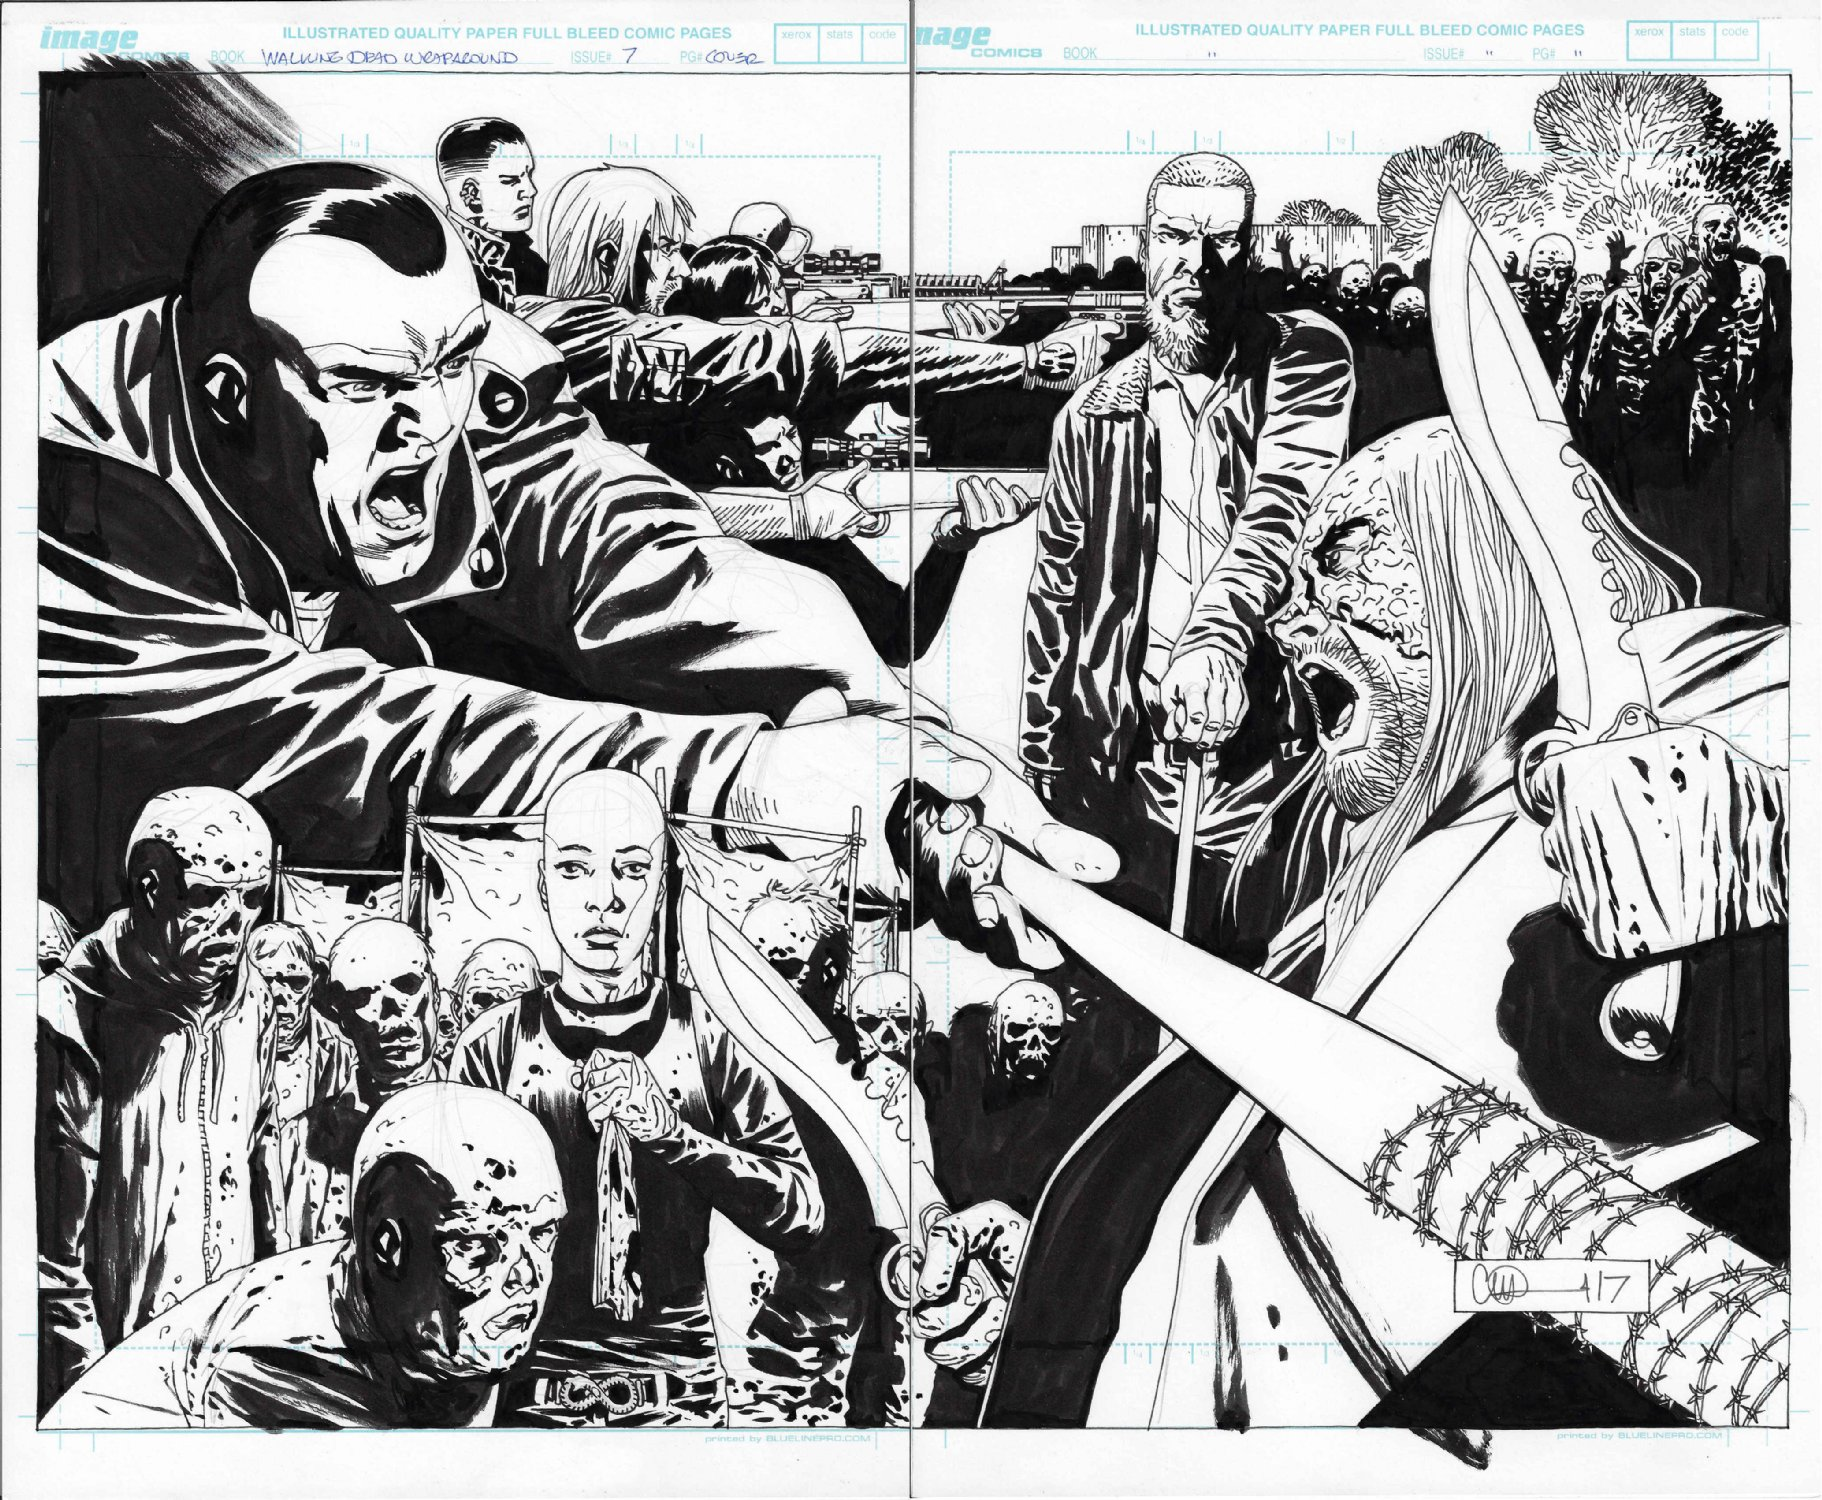 Walking Dead Compendium 7 Cover and Iss 179